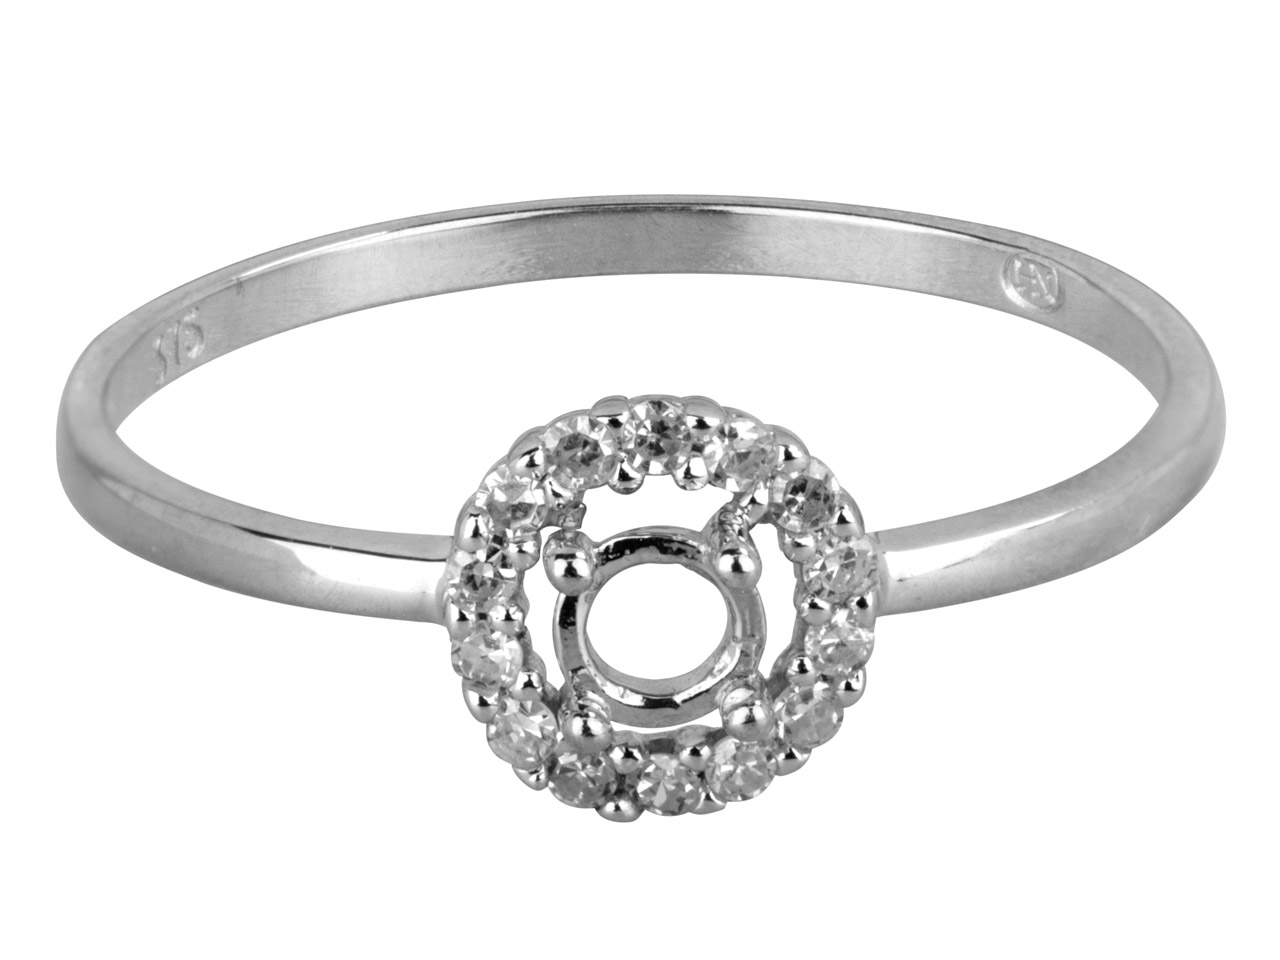 9ct White Semi Set Diamond Ring    Mount Hallmarked 14 Round Total    0.10ct Centre To Accommodate 3.0mm